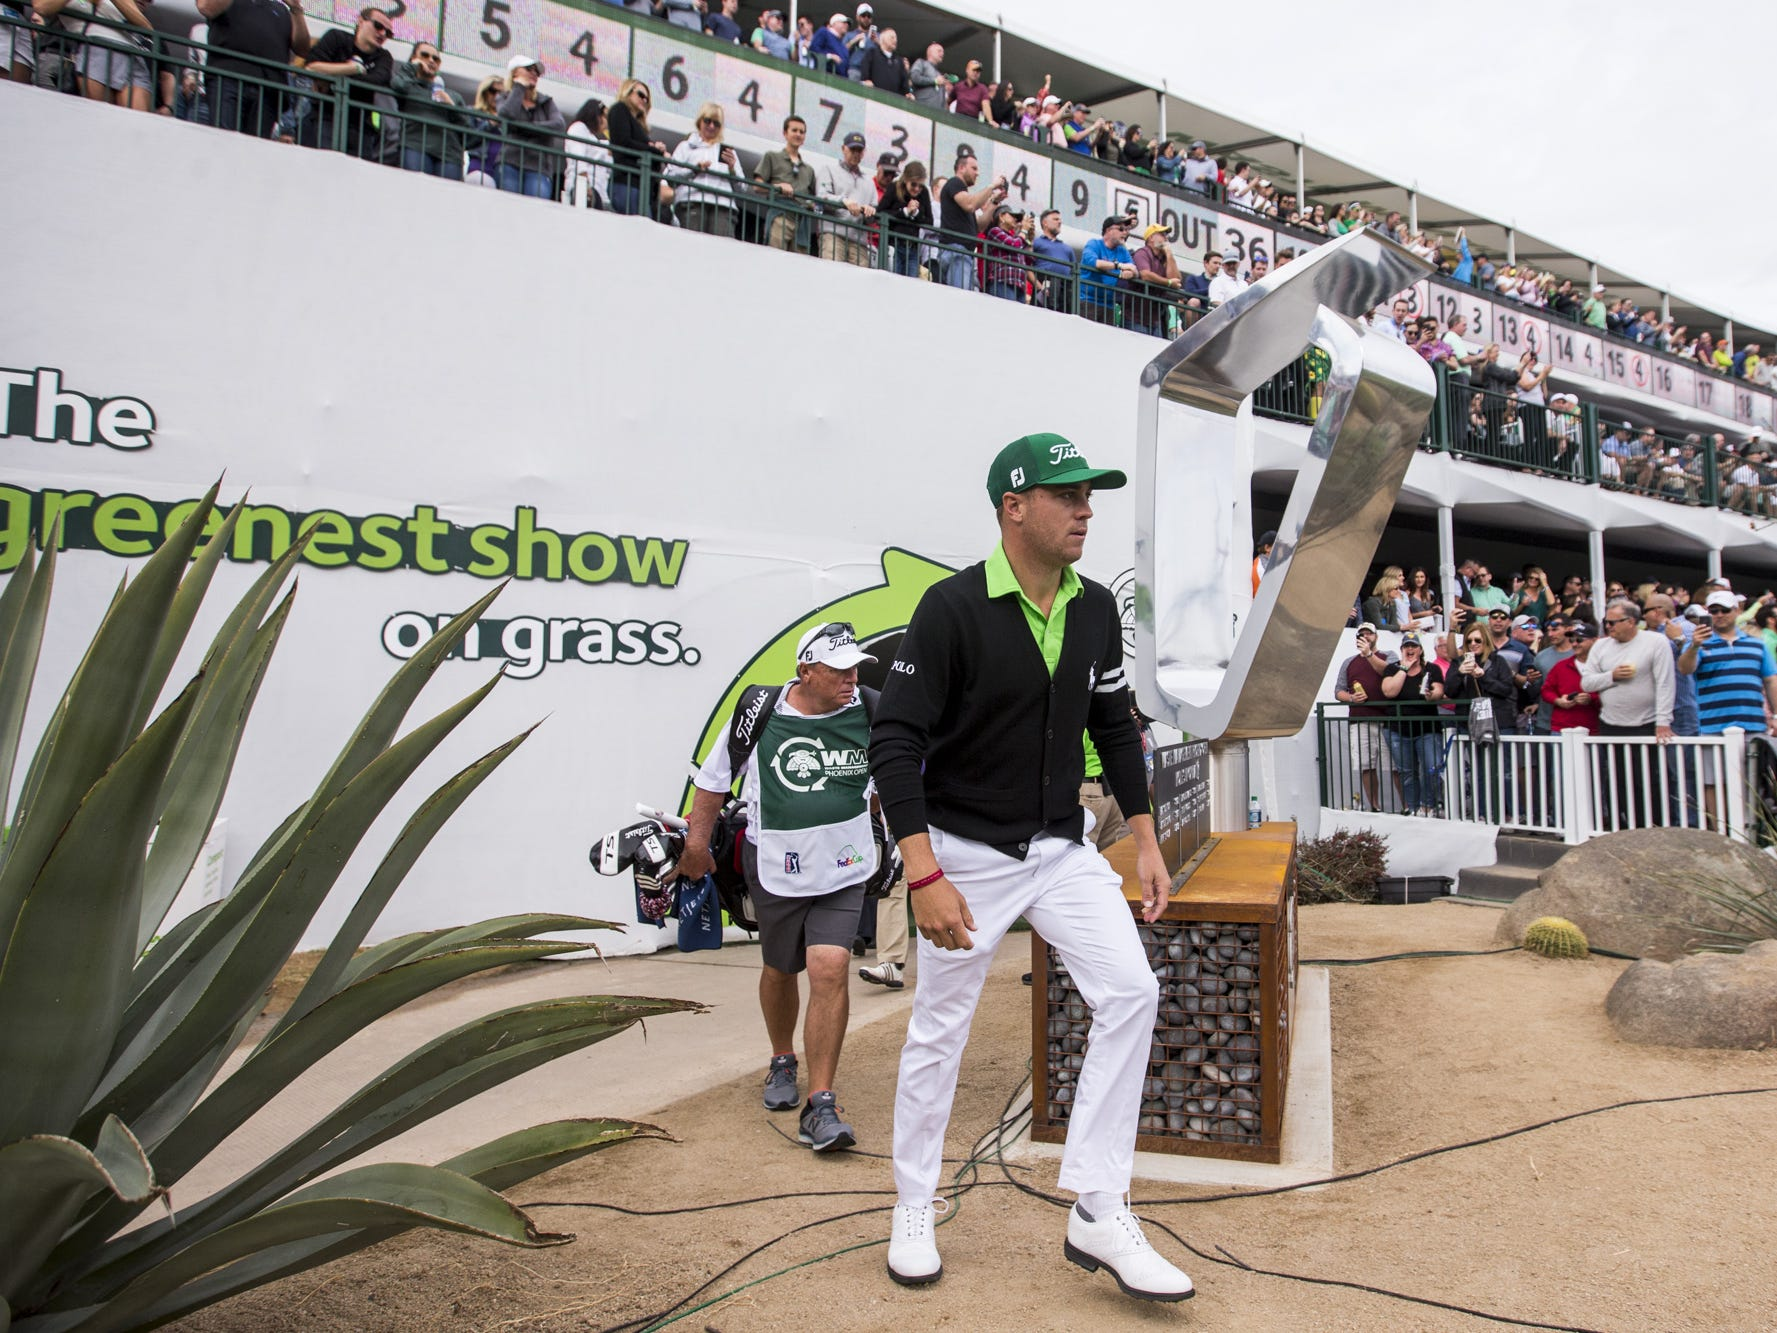 Justin Thomas walks to the 16th hole tee box during Round 3 of the Waste Management Phoenix Open on Saturday, Feb. 2, 2019, at TPC Scottsdale in Scottsdale, Ariz.